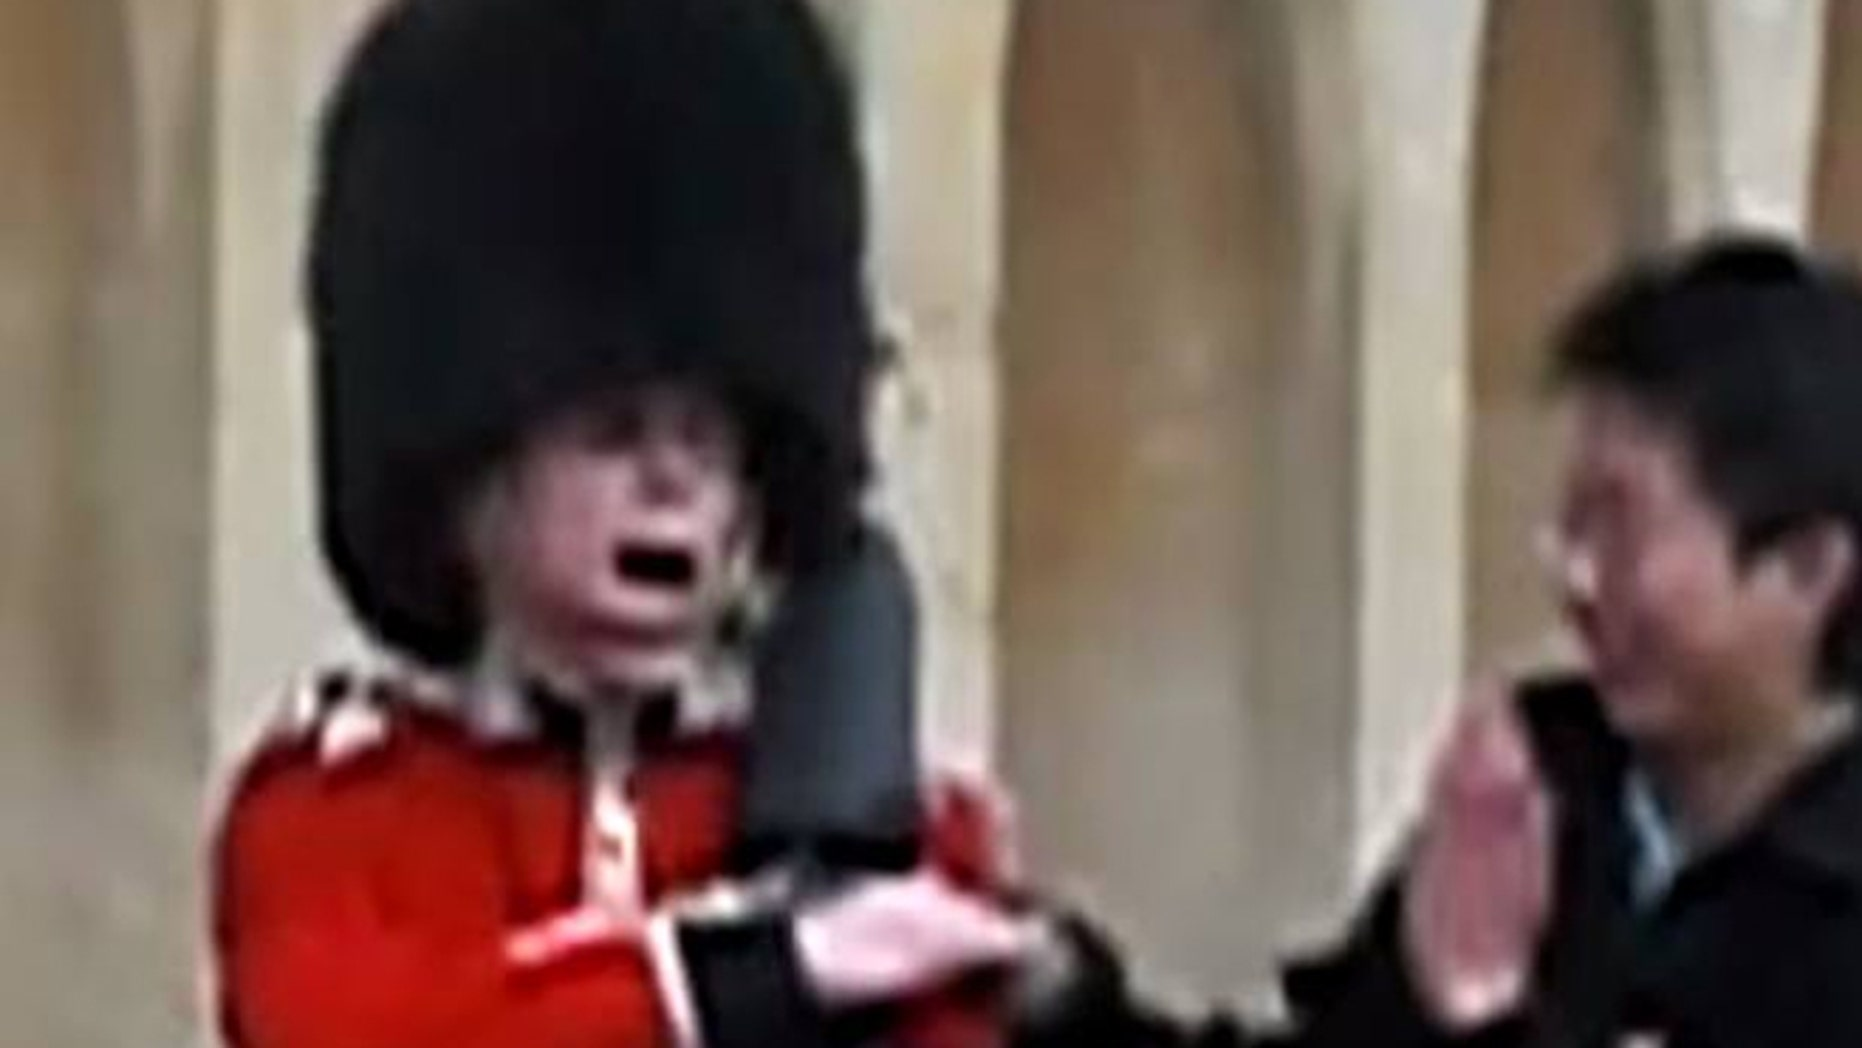 The moment a Queen's Guard pulls rifle on a tourist who touched him.